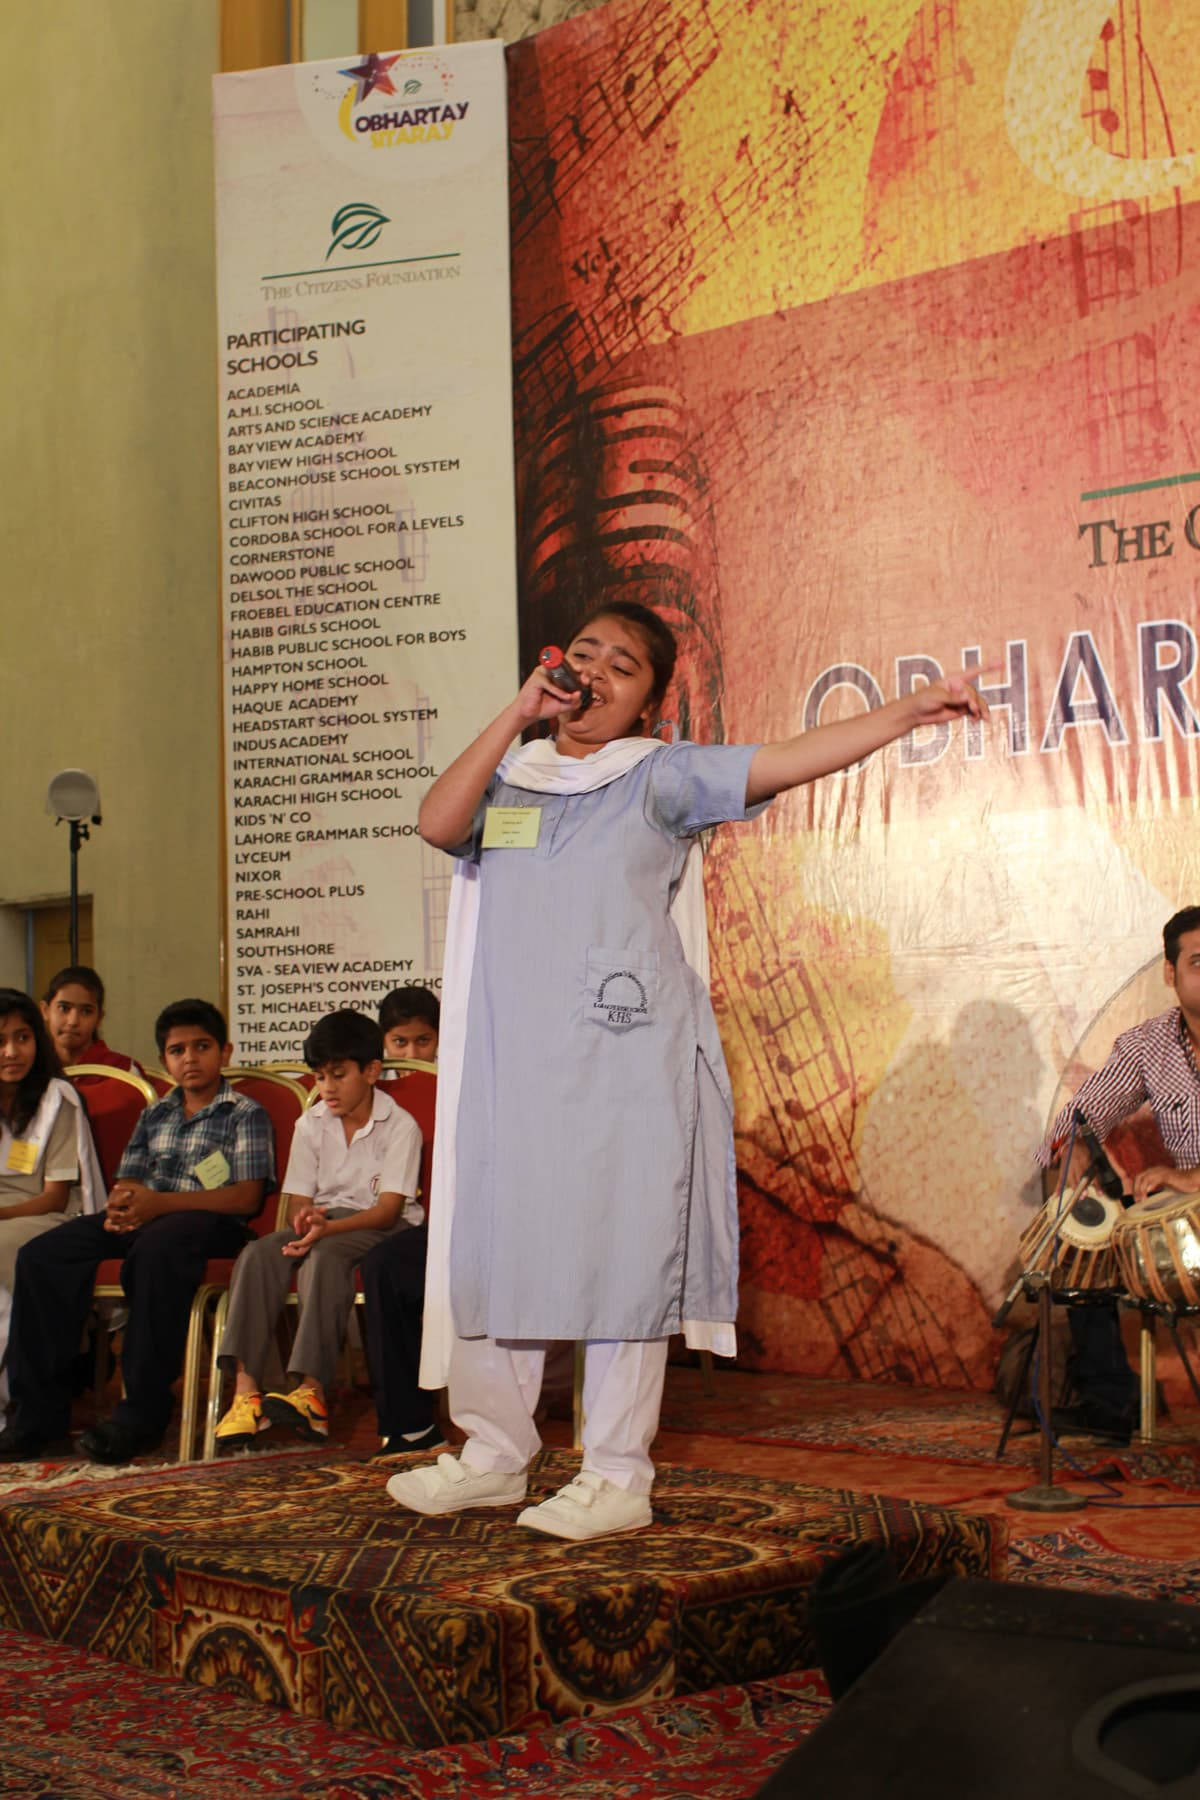 Participants perform at the event.